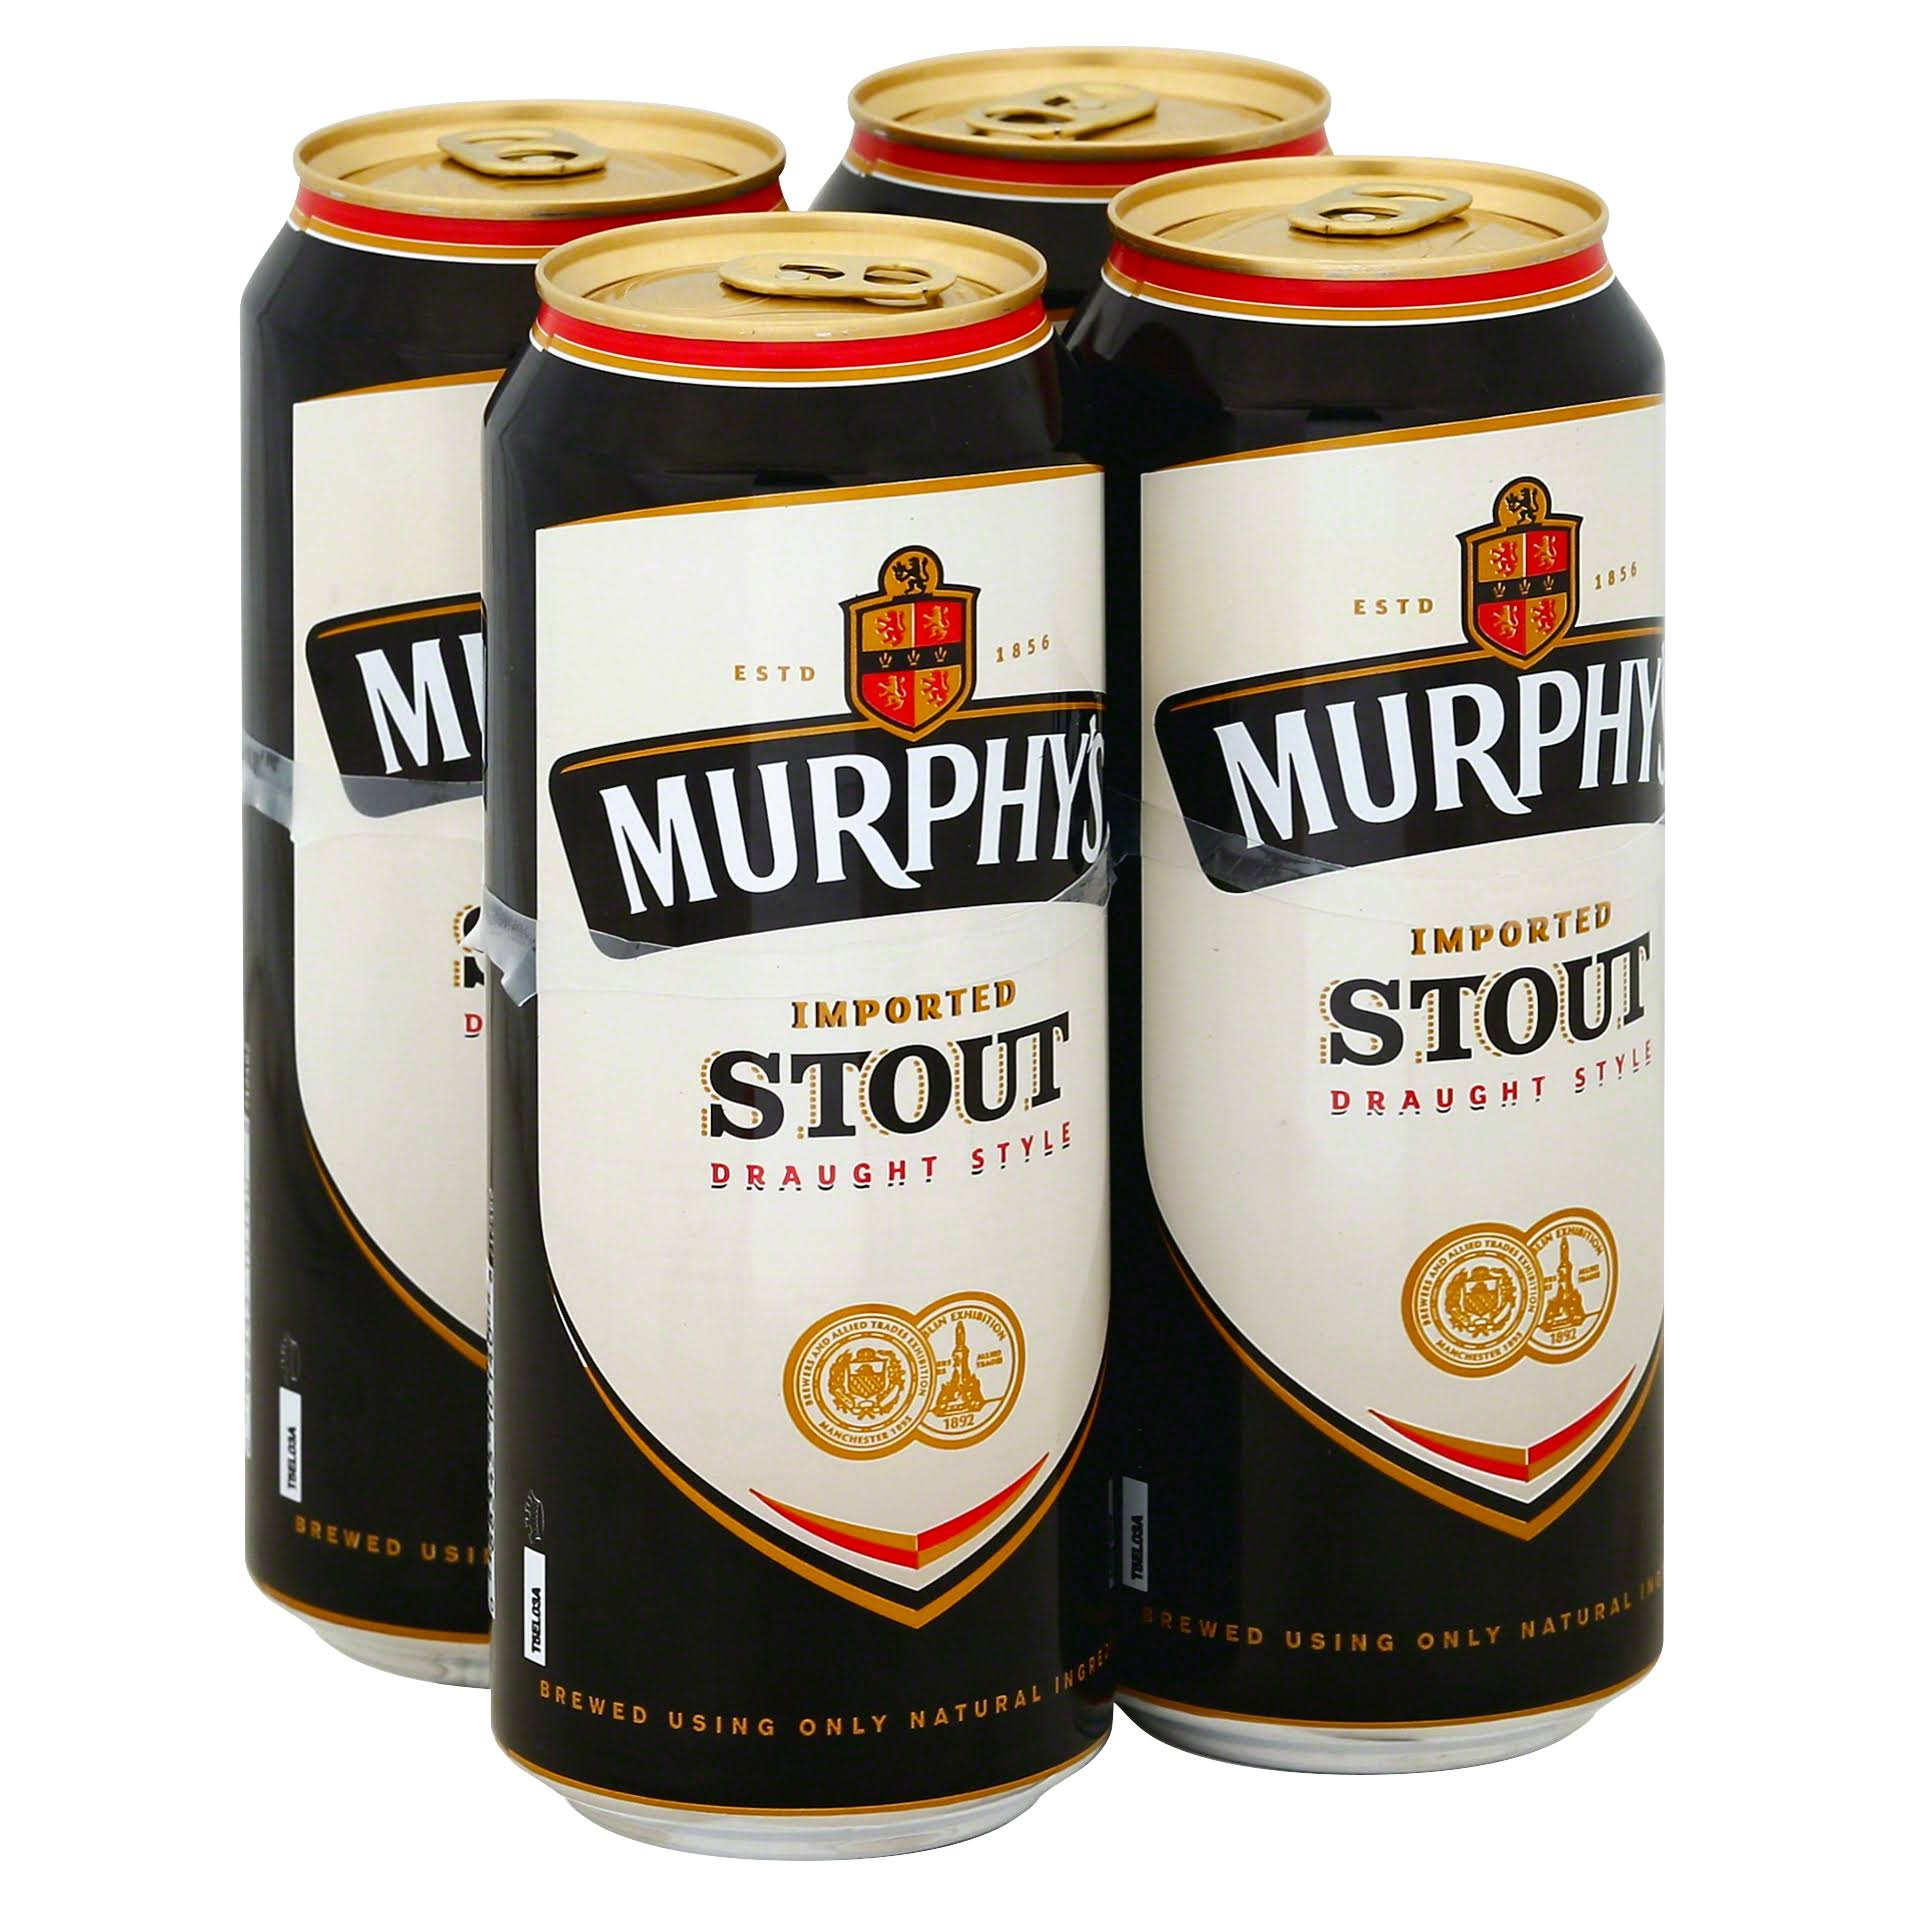 Murphy's Imported Stout Draught Style Beer - 14.9 oz, 4 Pack